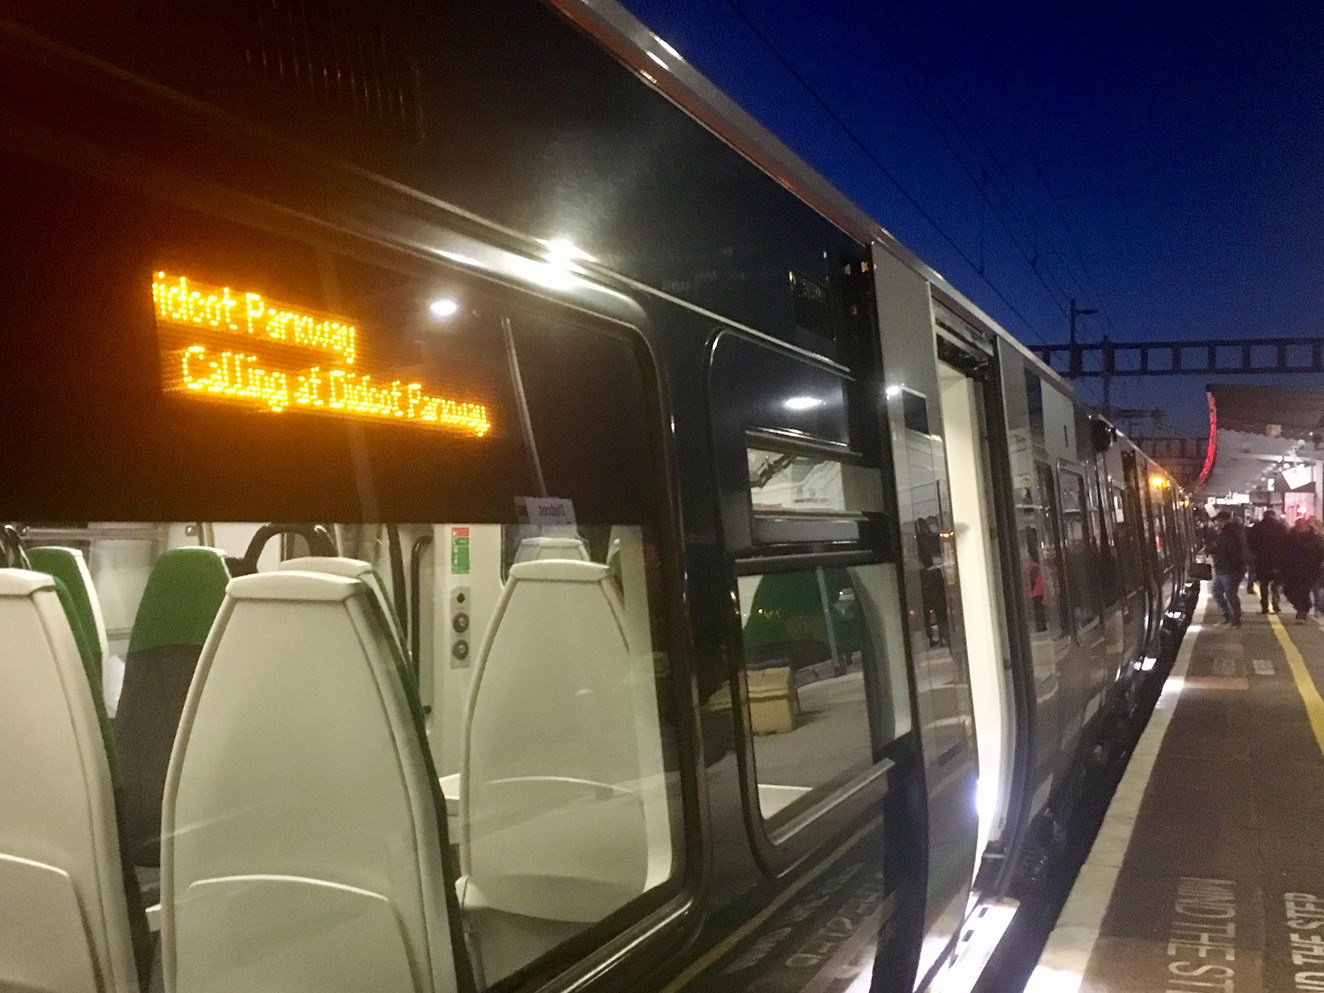 Electrification to Didcot delivered allowing new trains with more seats to come into service: Electrostar at Didcot station